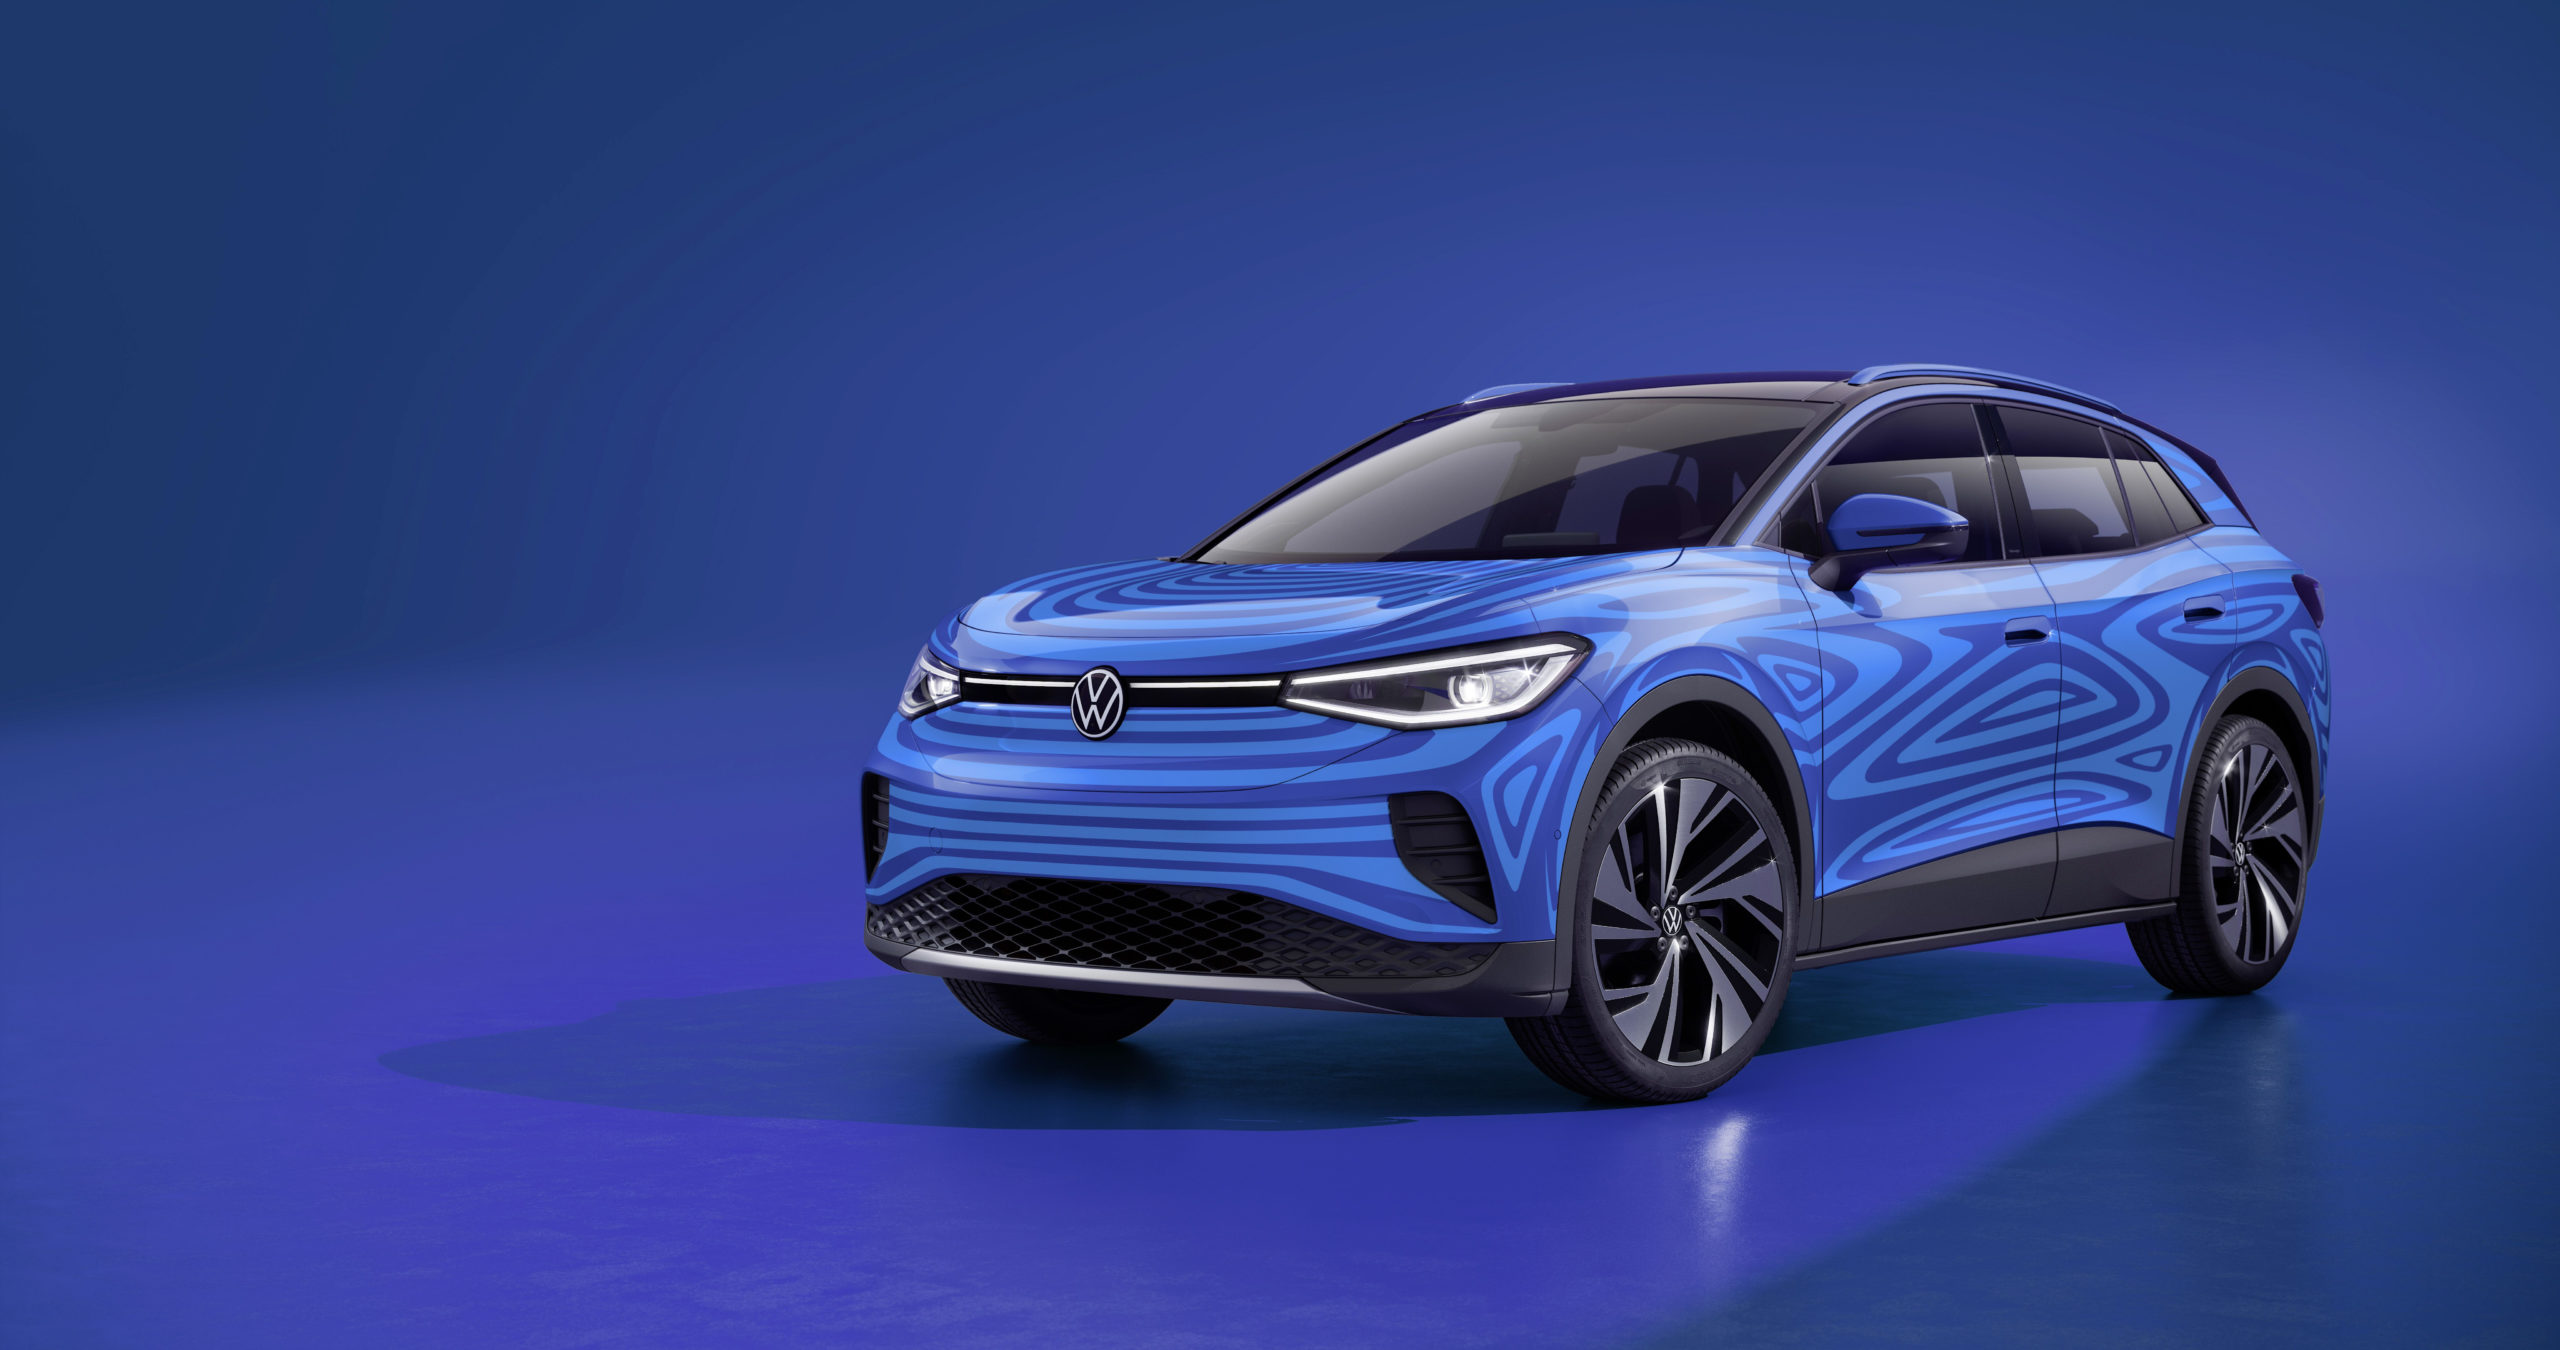 2021 Volkswagen Id.4: What We Know So Far - 2022 Kia E-Niro Crash Test, Gas Mileage, Release Date